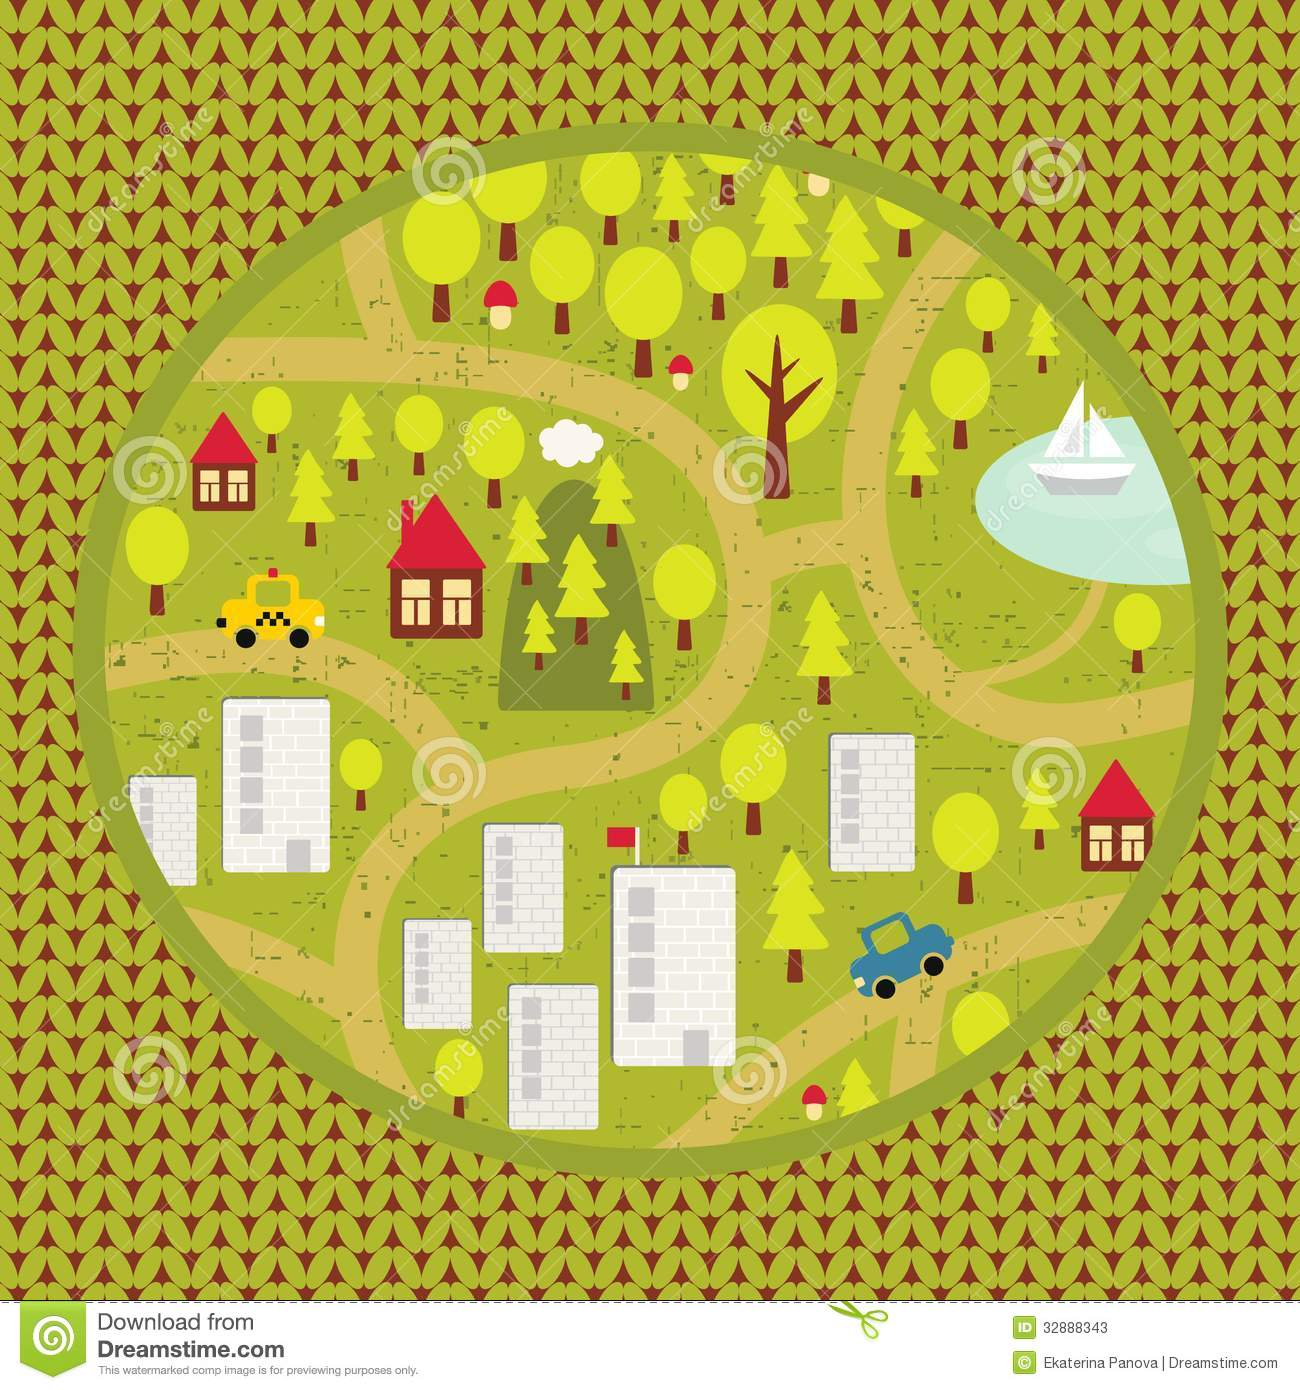 Town Landscape Vector Illustration: Cartoon Map Pattern Of Small Town And Countryside. Stock